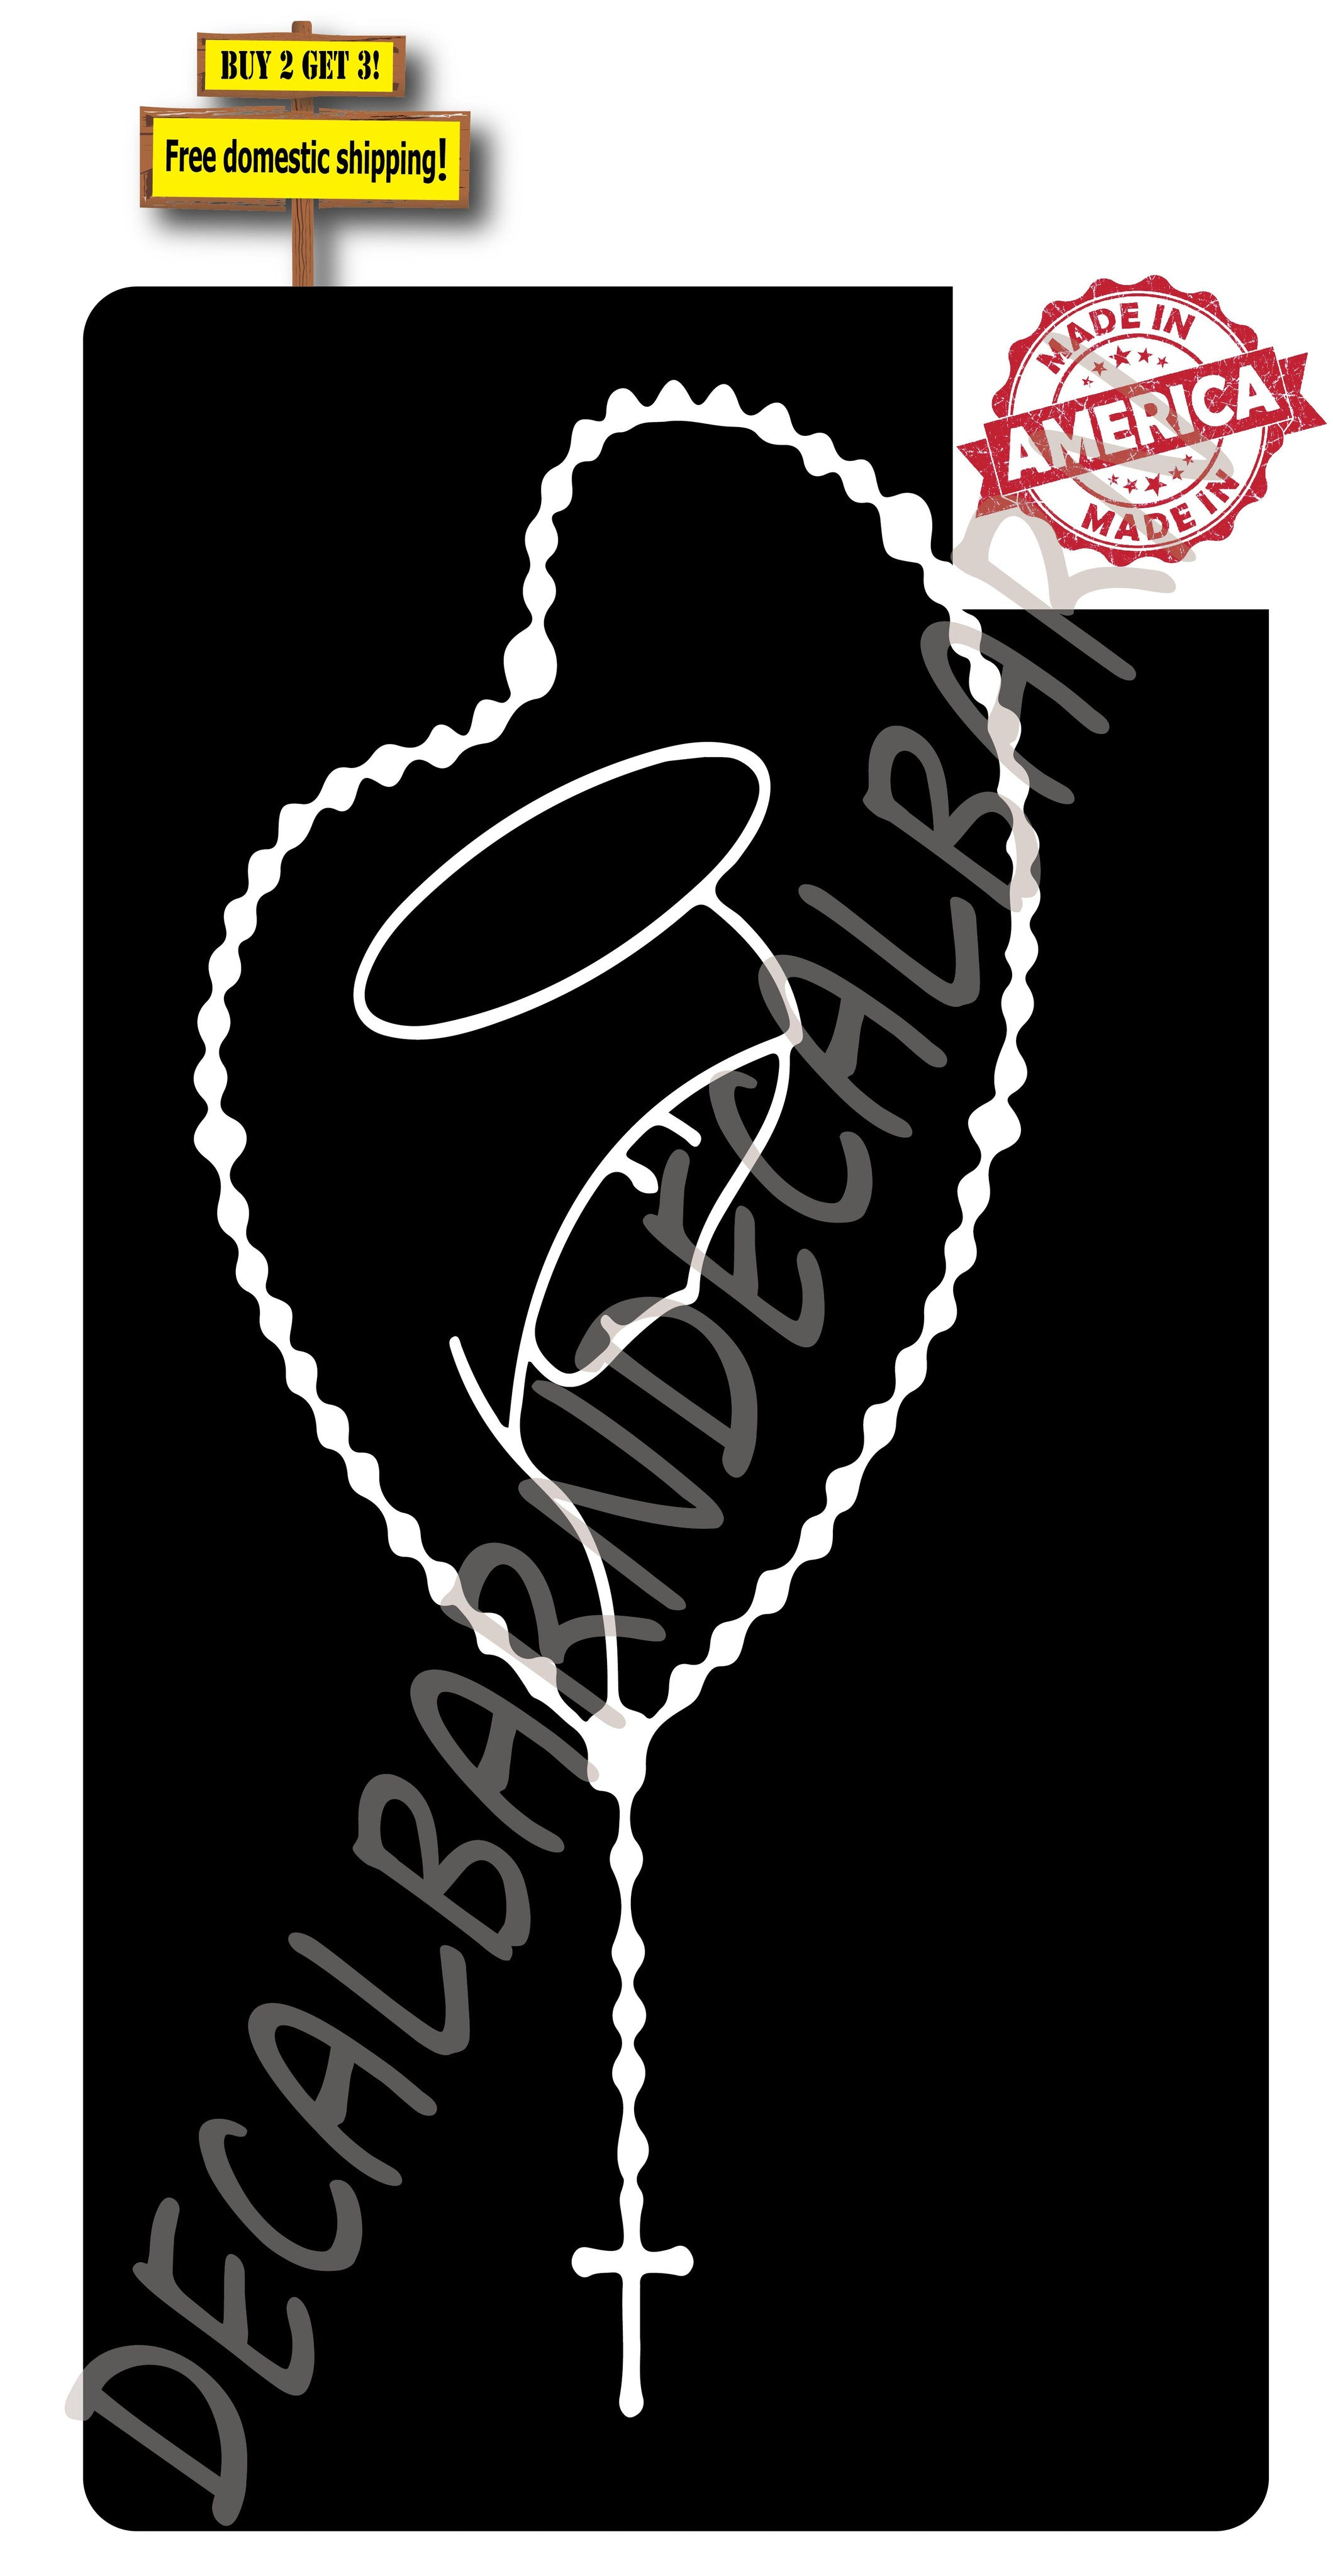 Rosary Mary Catholic Vinyl Die Cut Decal Sticker Buy 2 Get 3 Free Shipping